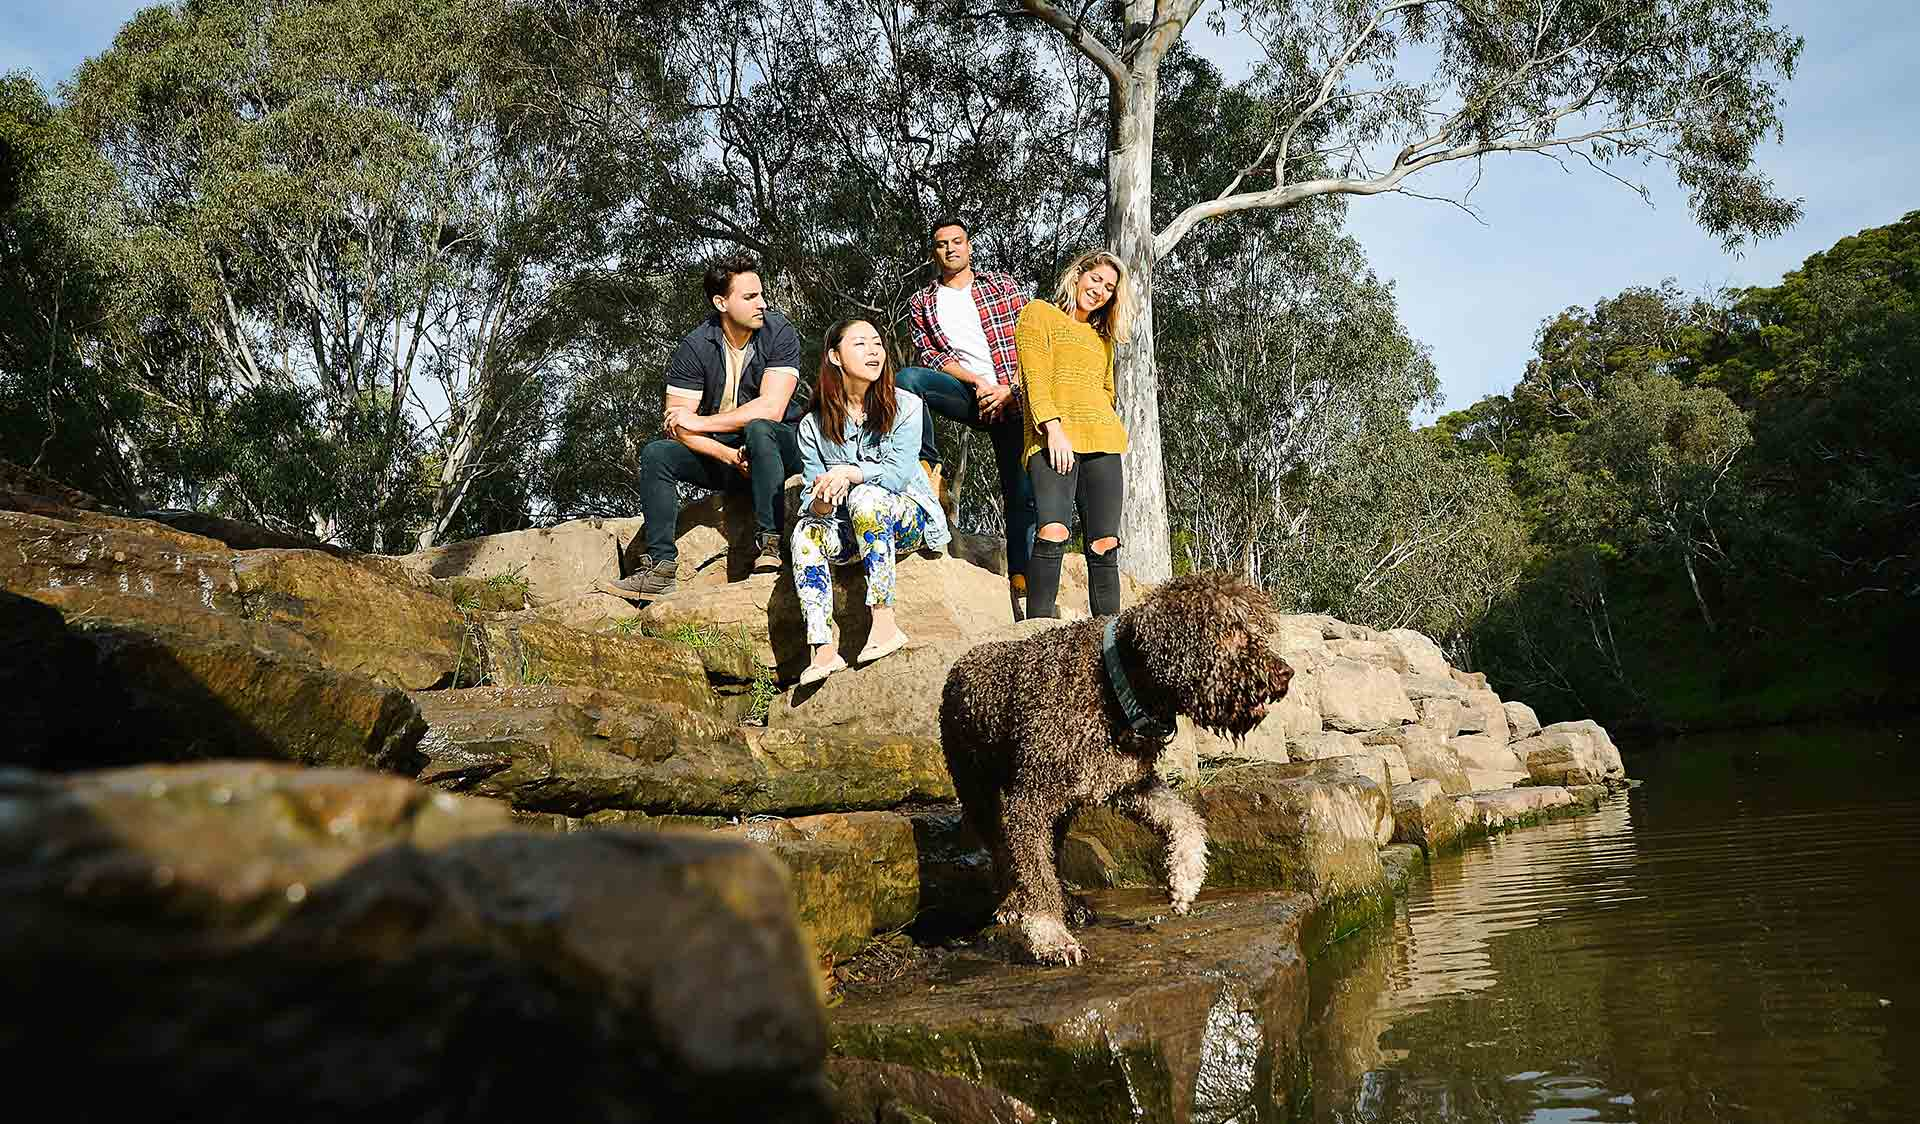 Four friends resting on rocks while watching their dog in front of them by the Yarra River